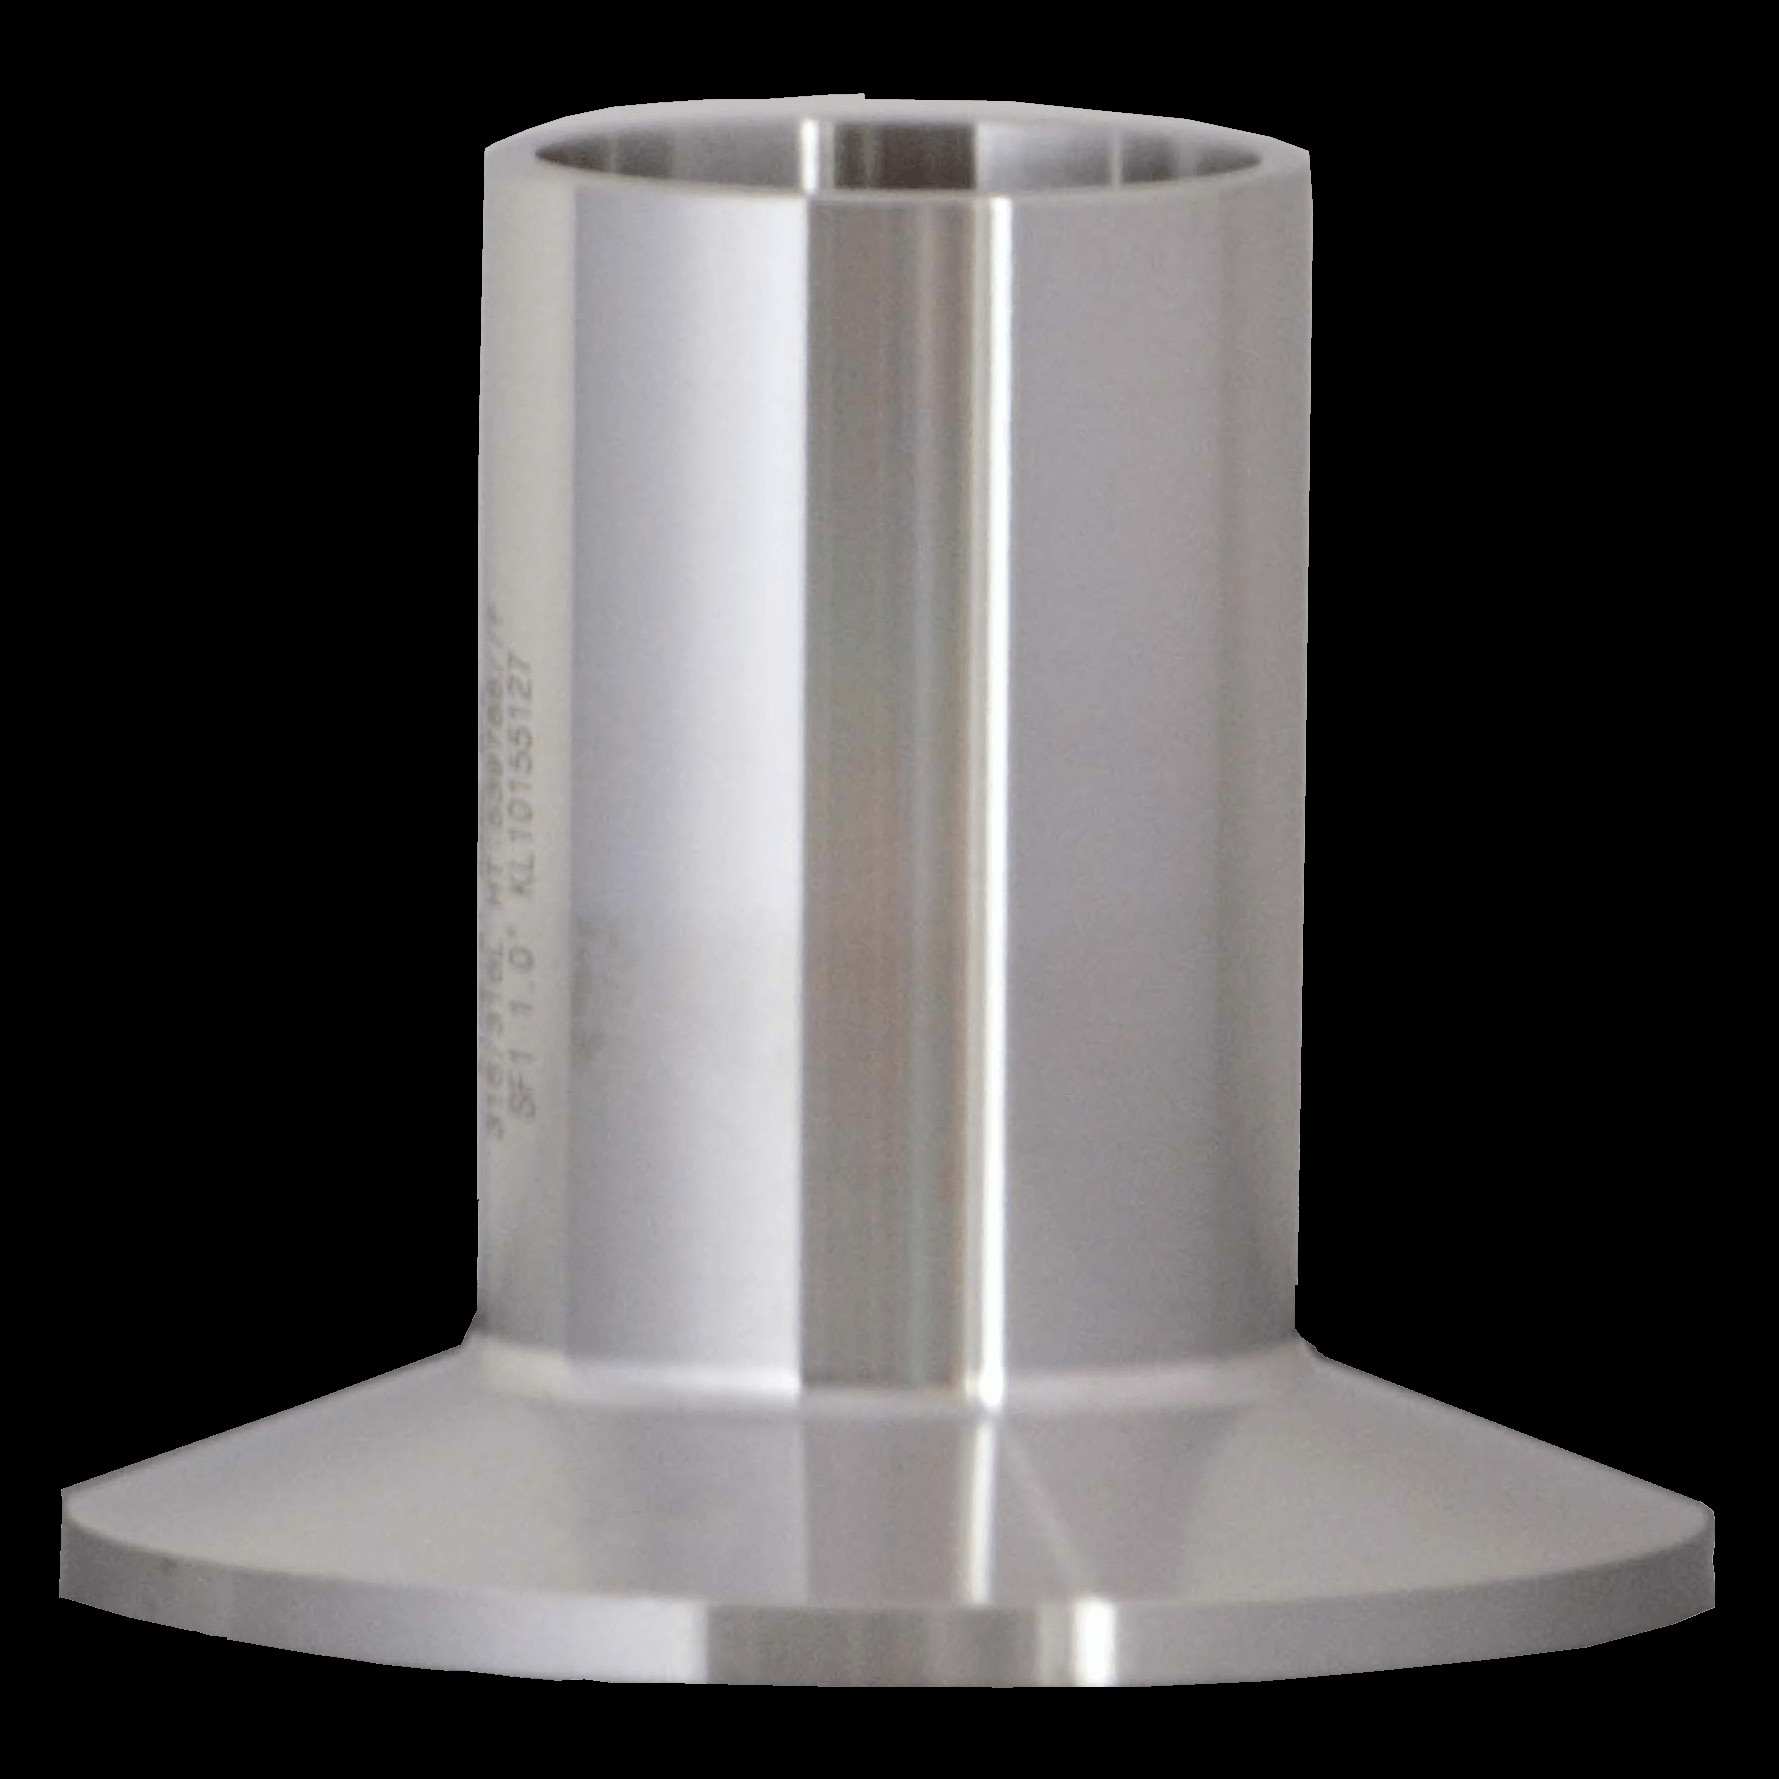 glass cylinder vases 9 in of tl14am7 2″ ferrule clamp end x weld end bpe 316l 20ra id 32ra od within tl14am7 2 ferrule clamp end x weld end bpe 316l 32ra id 32ra od